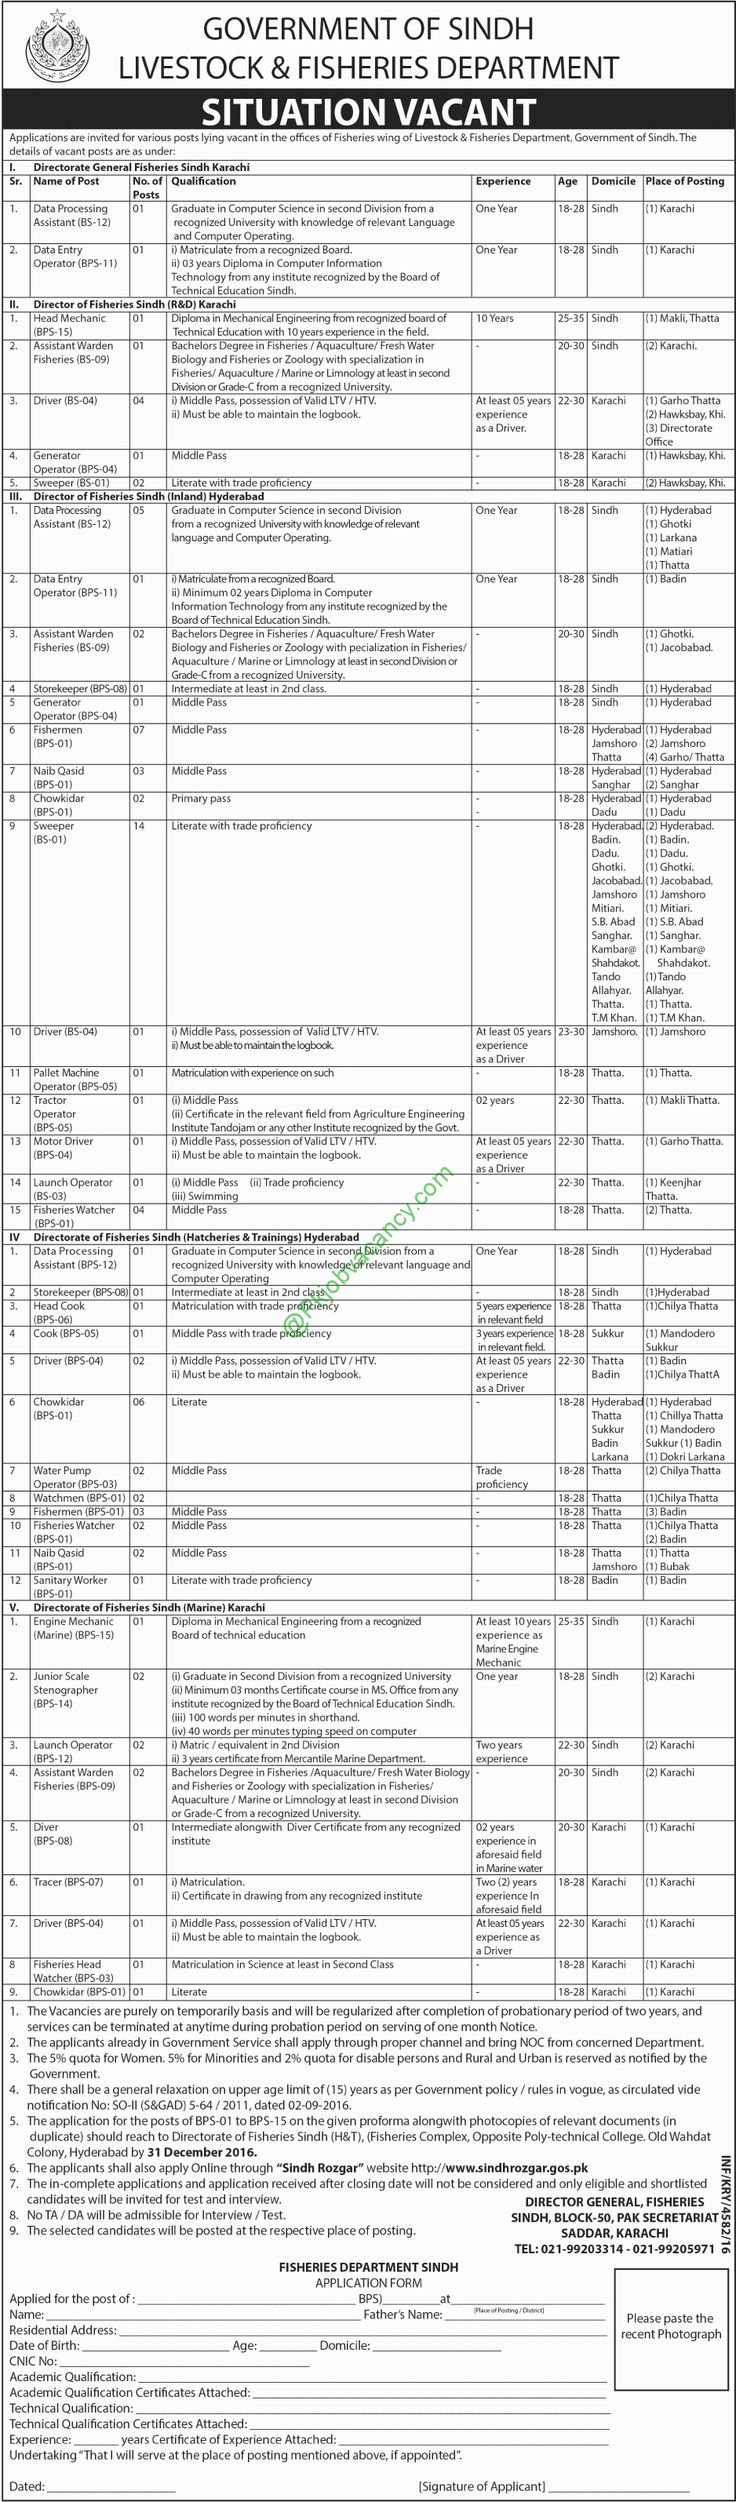 Sindh Livestock and Fisheries Department Jobs 2016 December Application Form Download